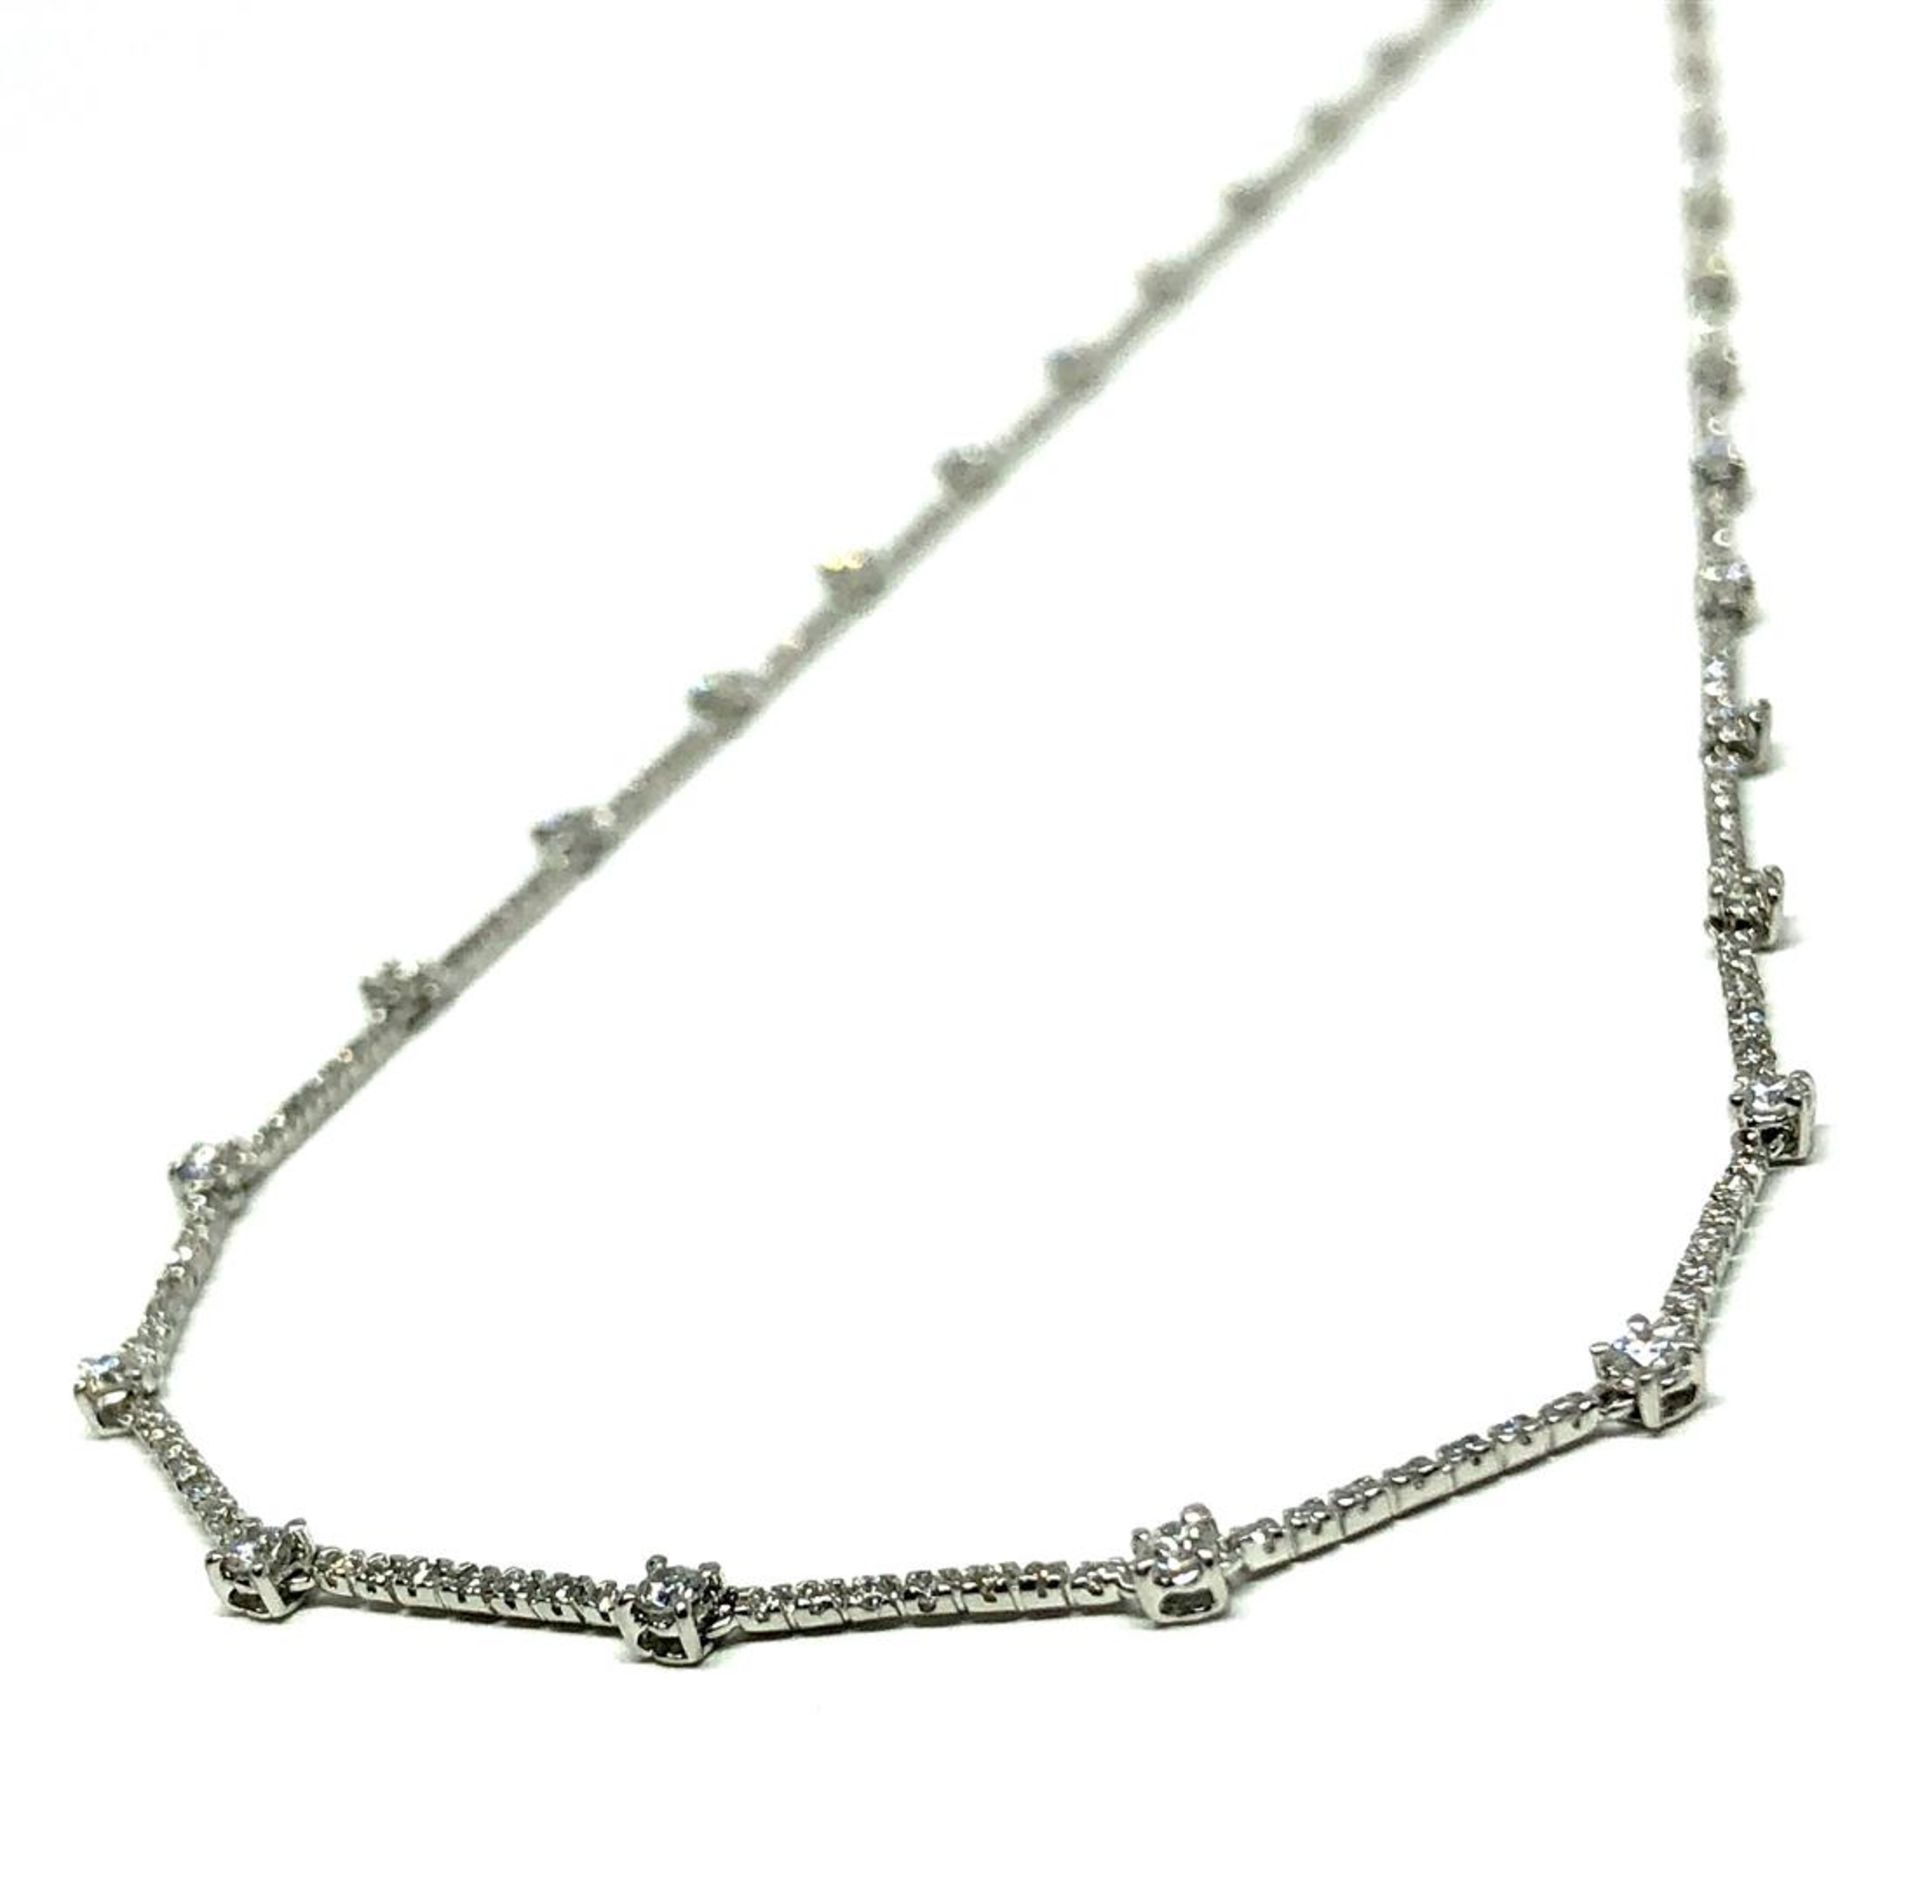 2.20 ctw Diamond Necklace - 18KT White Gold - Image 3 of 4